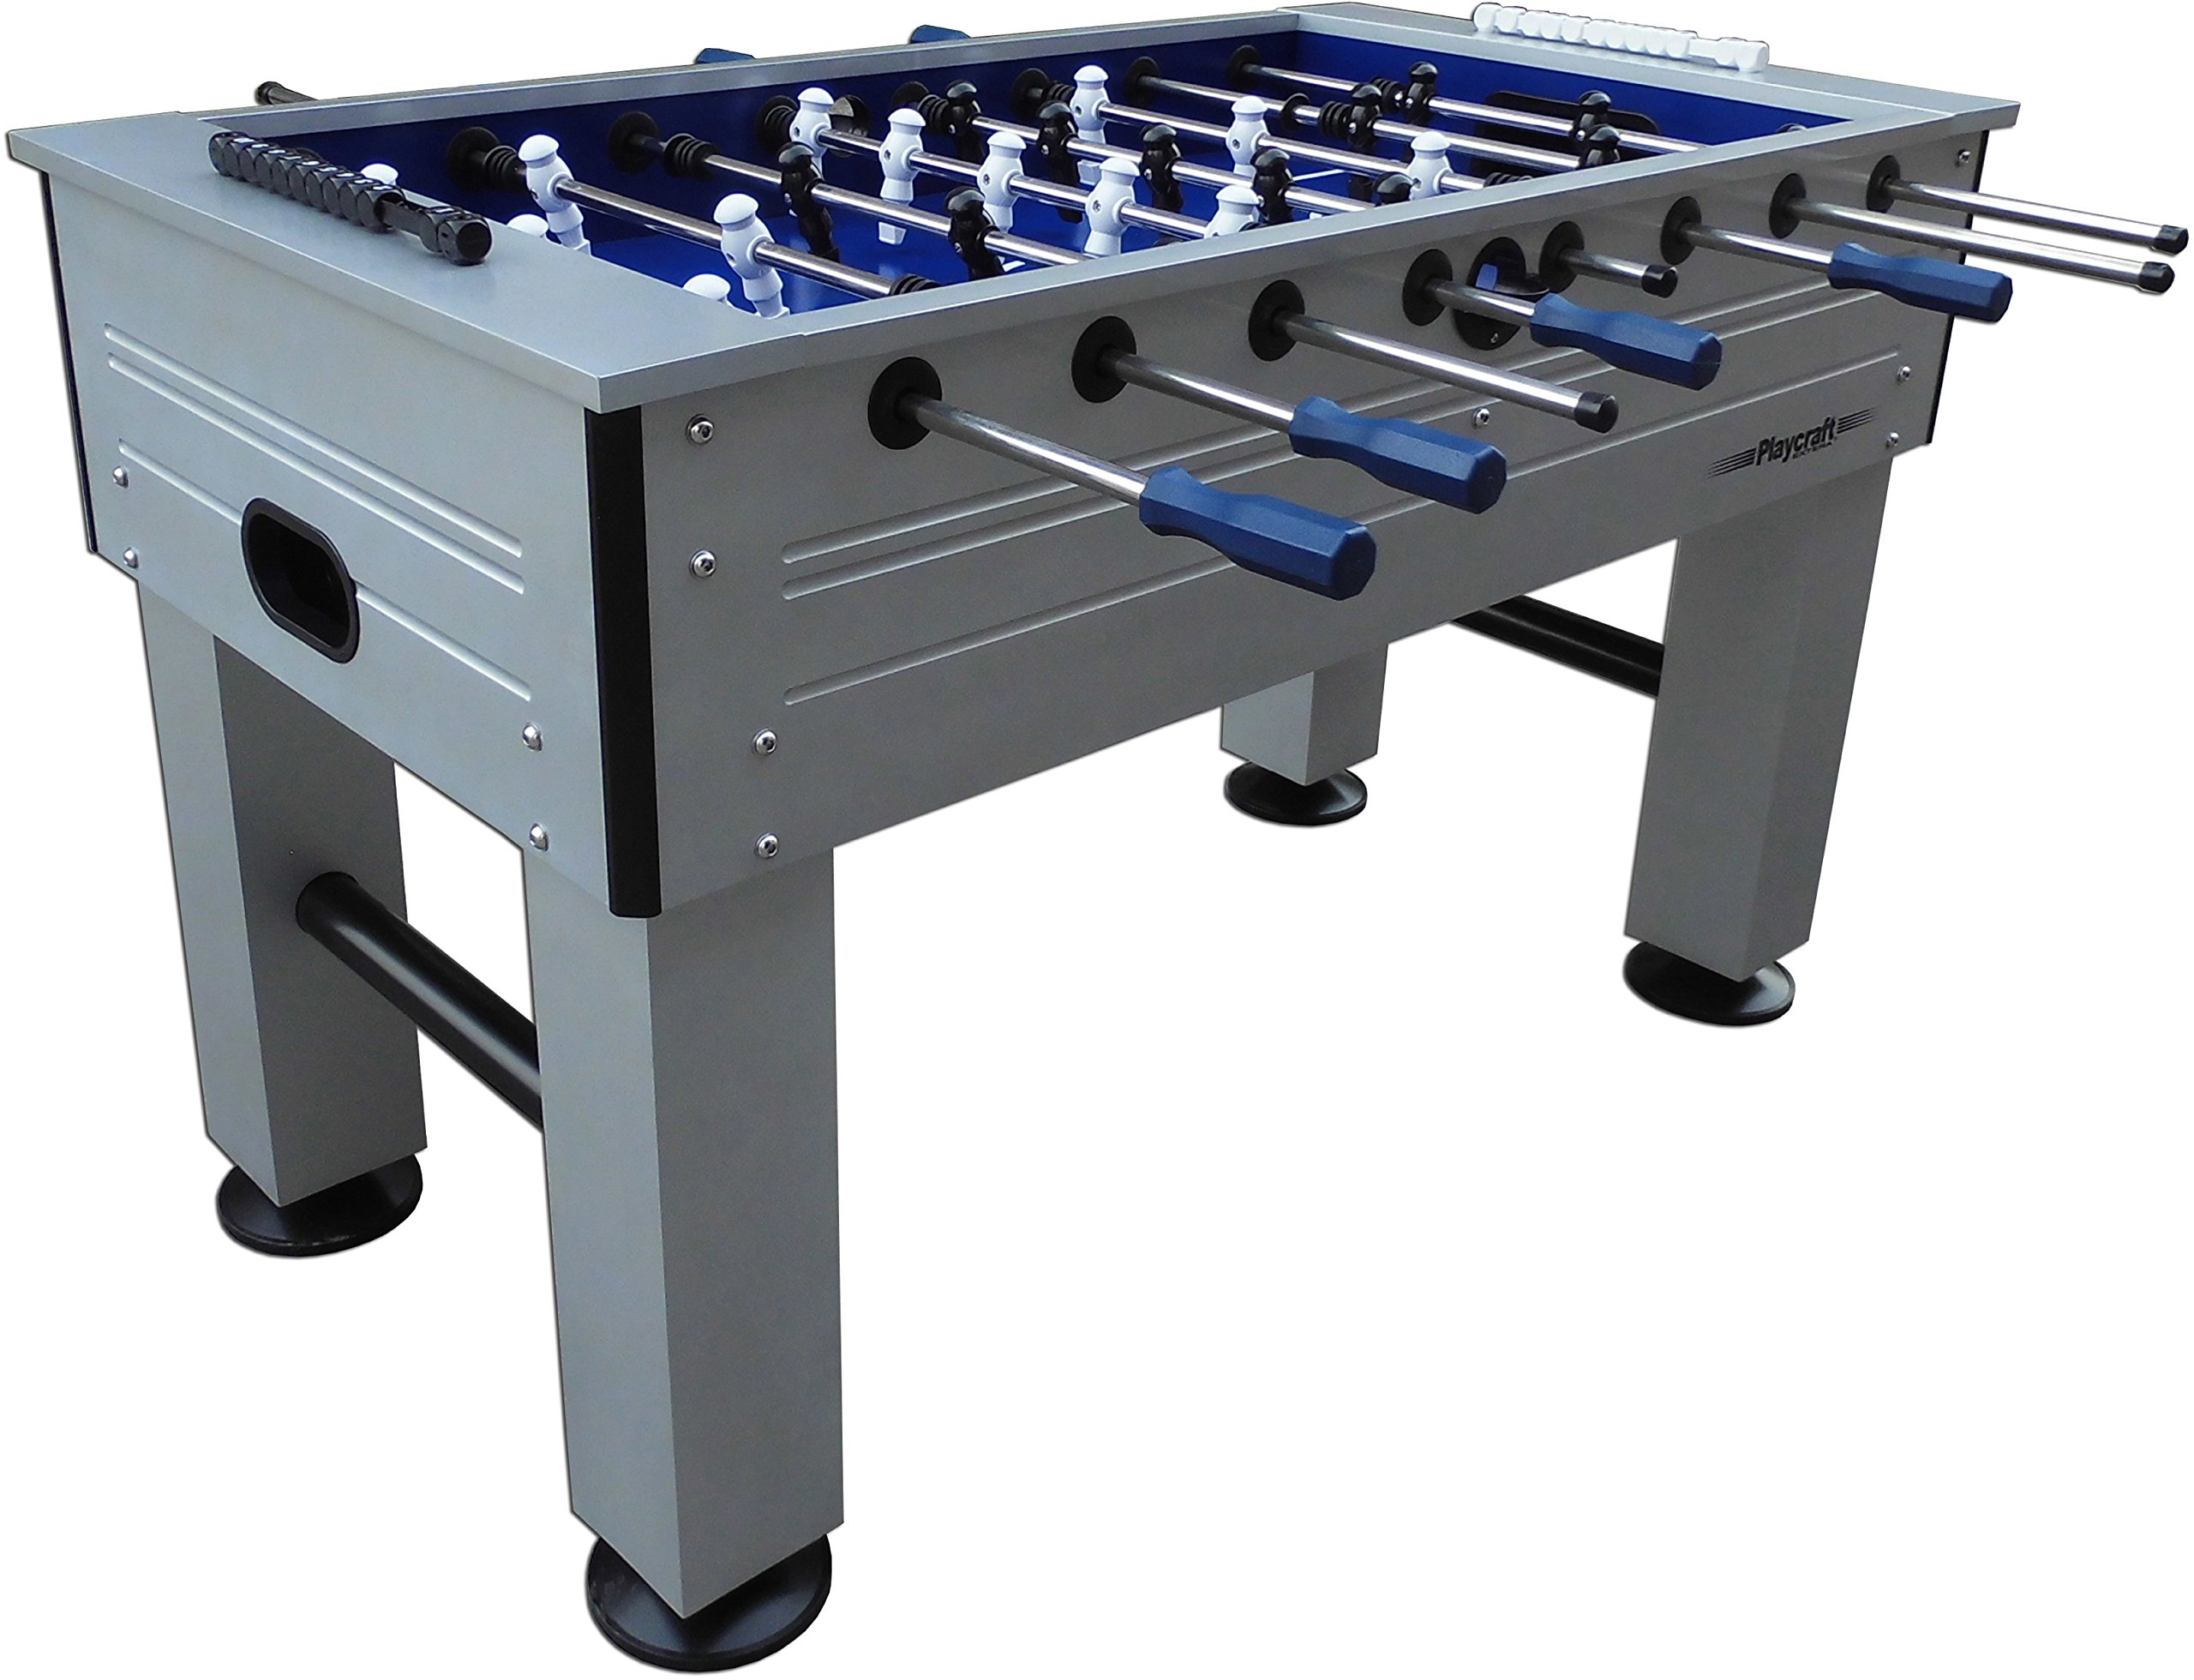 Playcraft Extera Outdoor Foosball Table, Silver by Playcraft